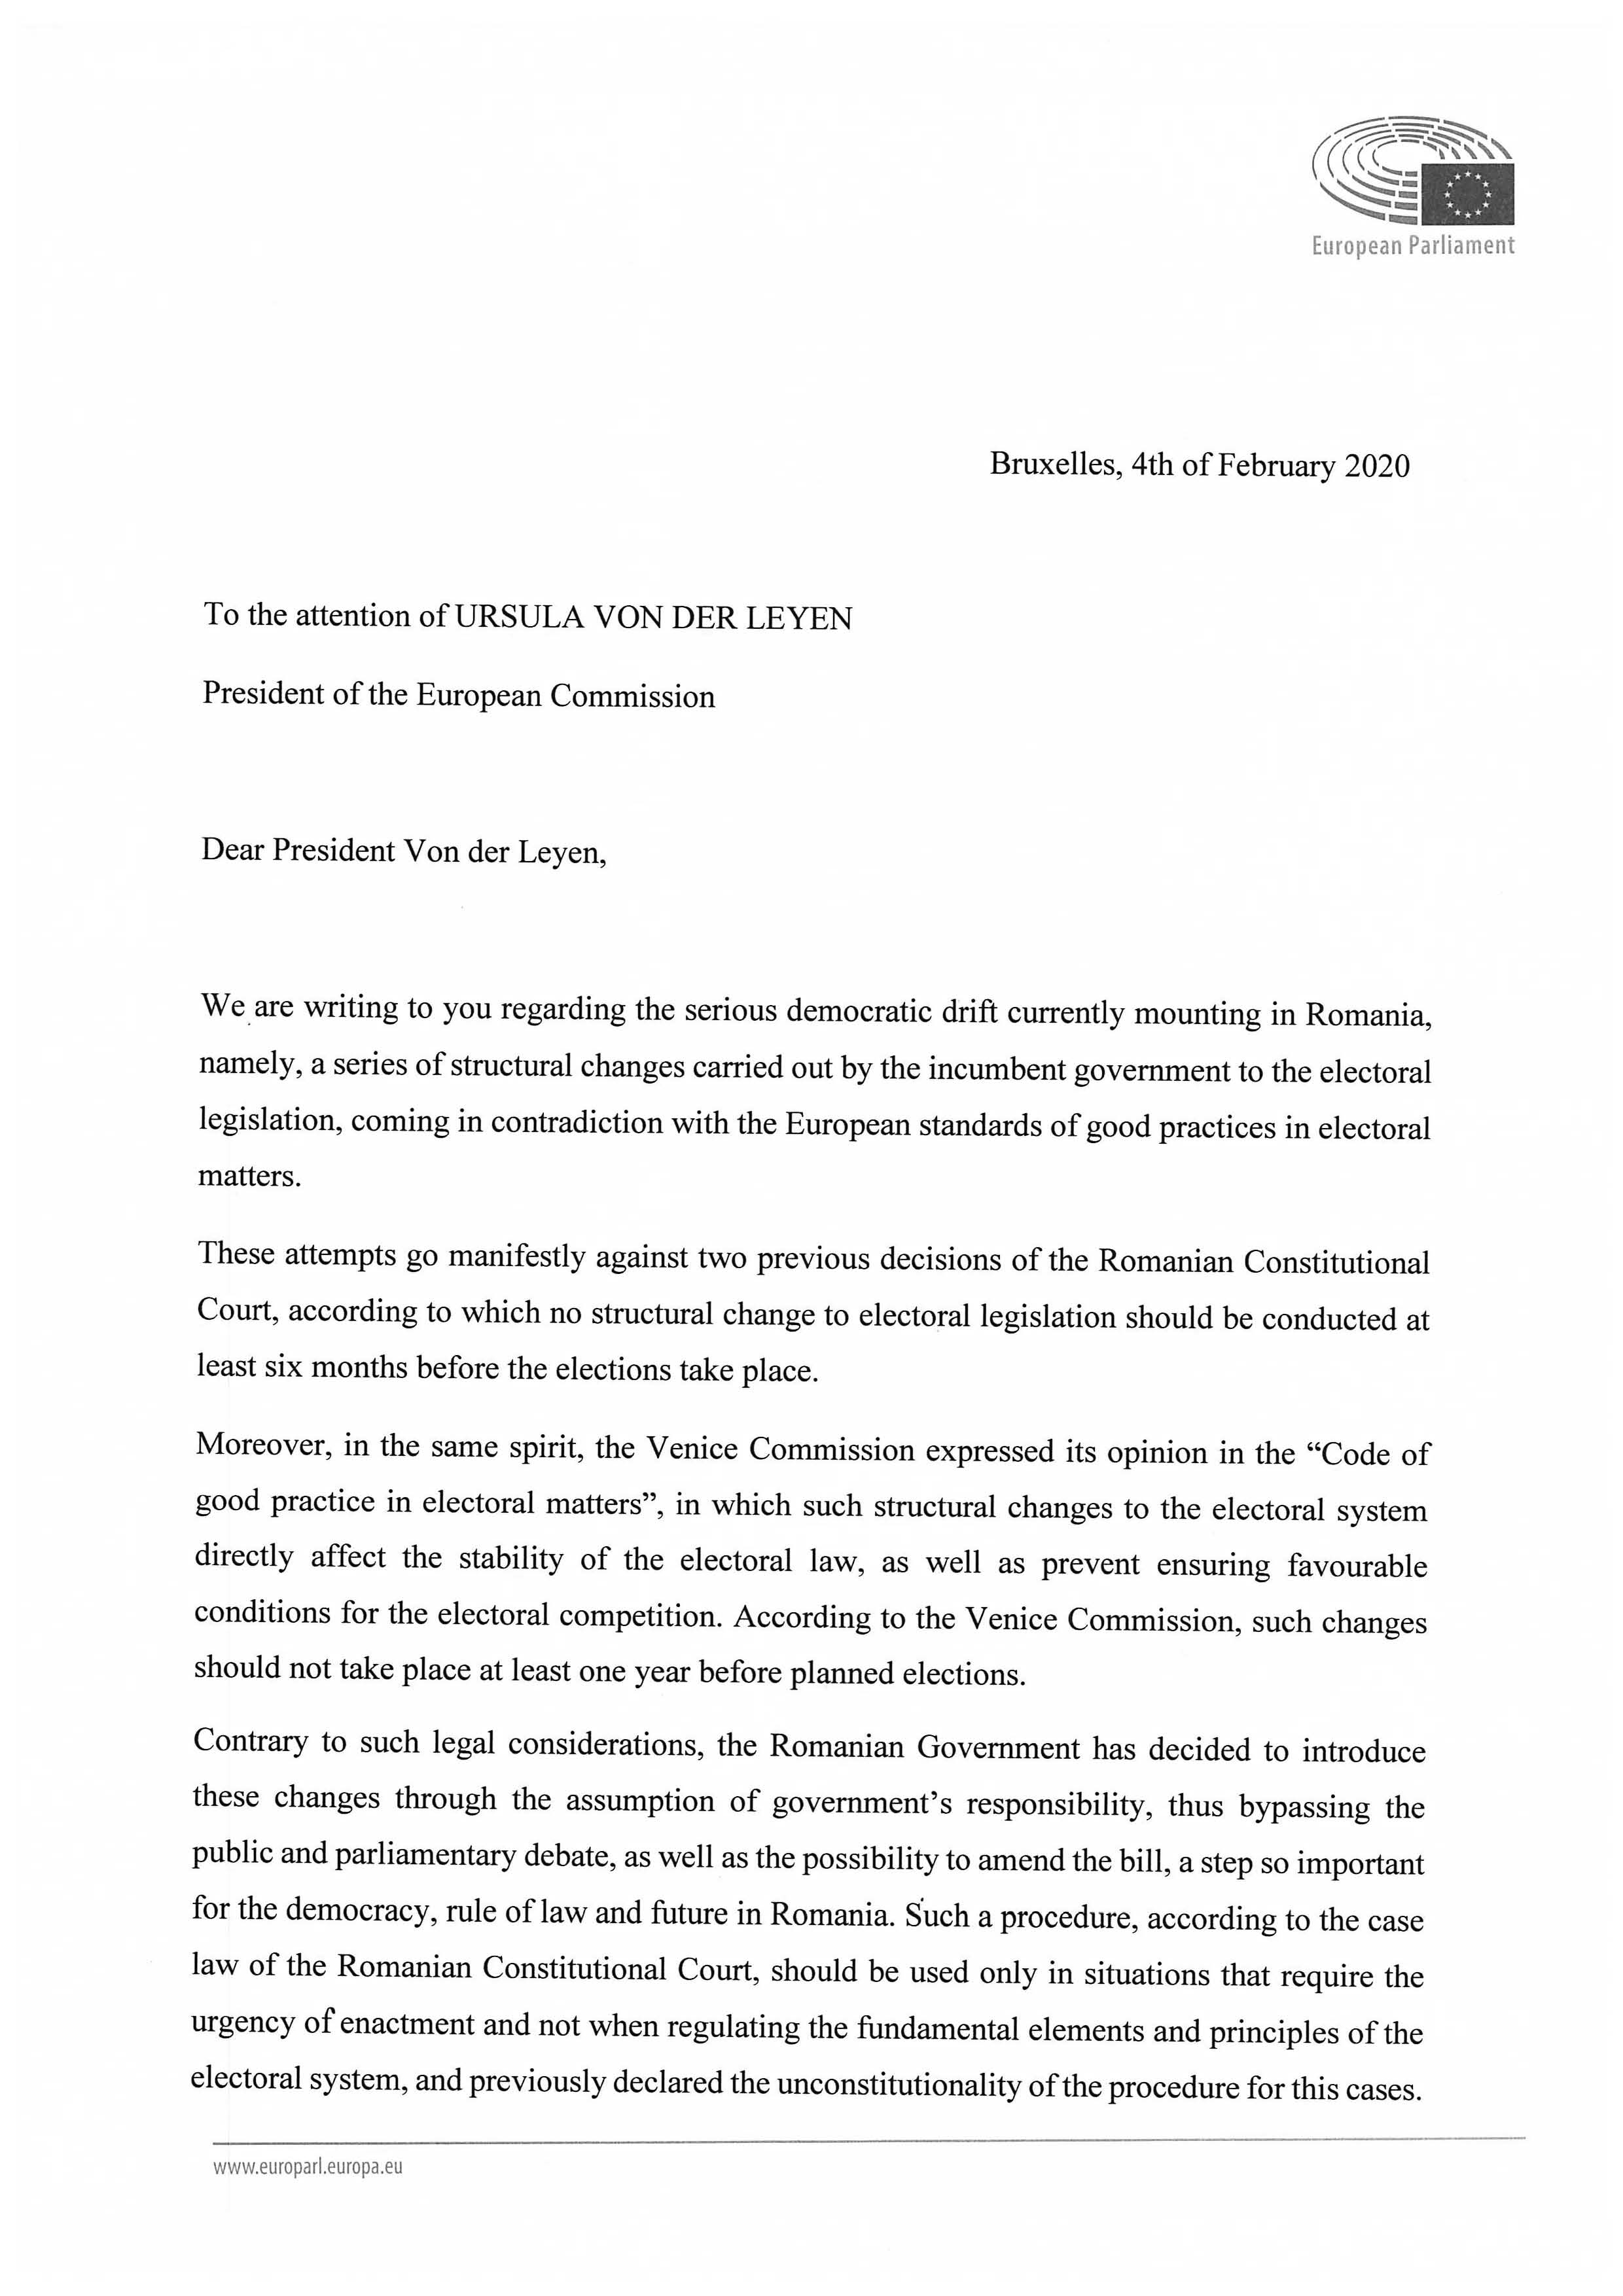 Letter President Von der Leyen Rule of Law Page 1